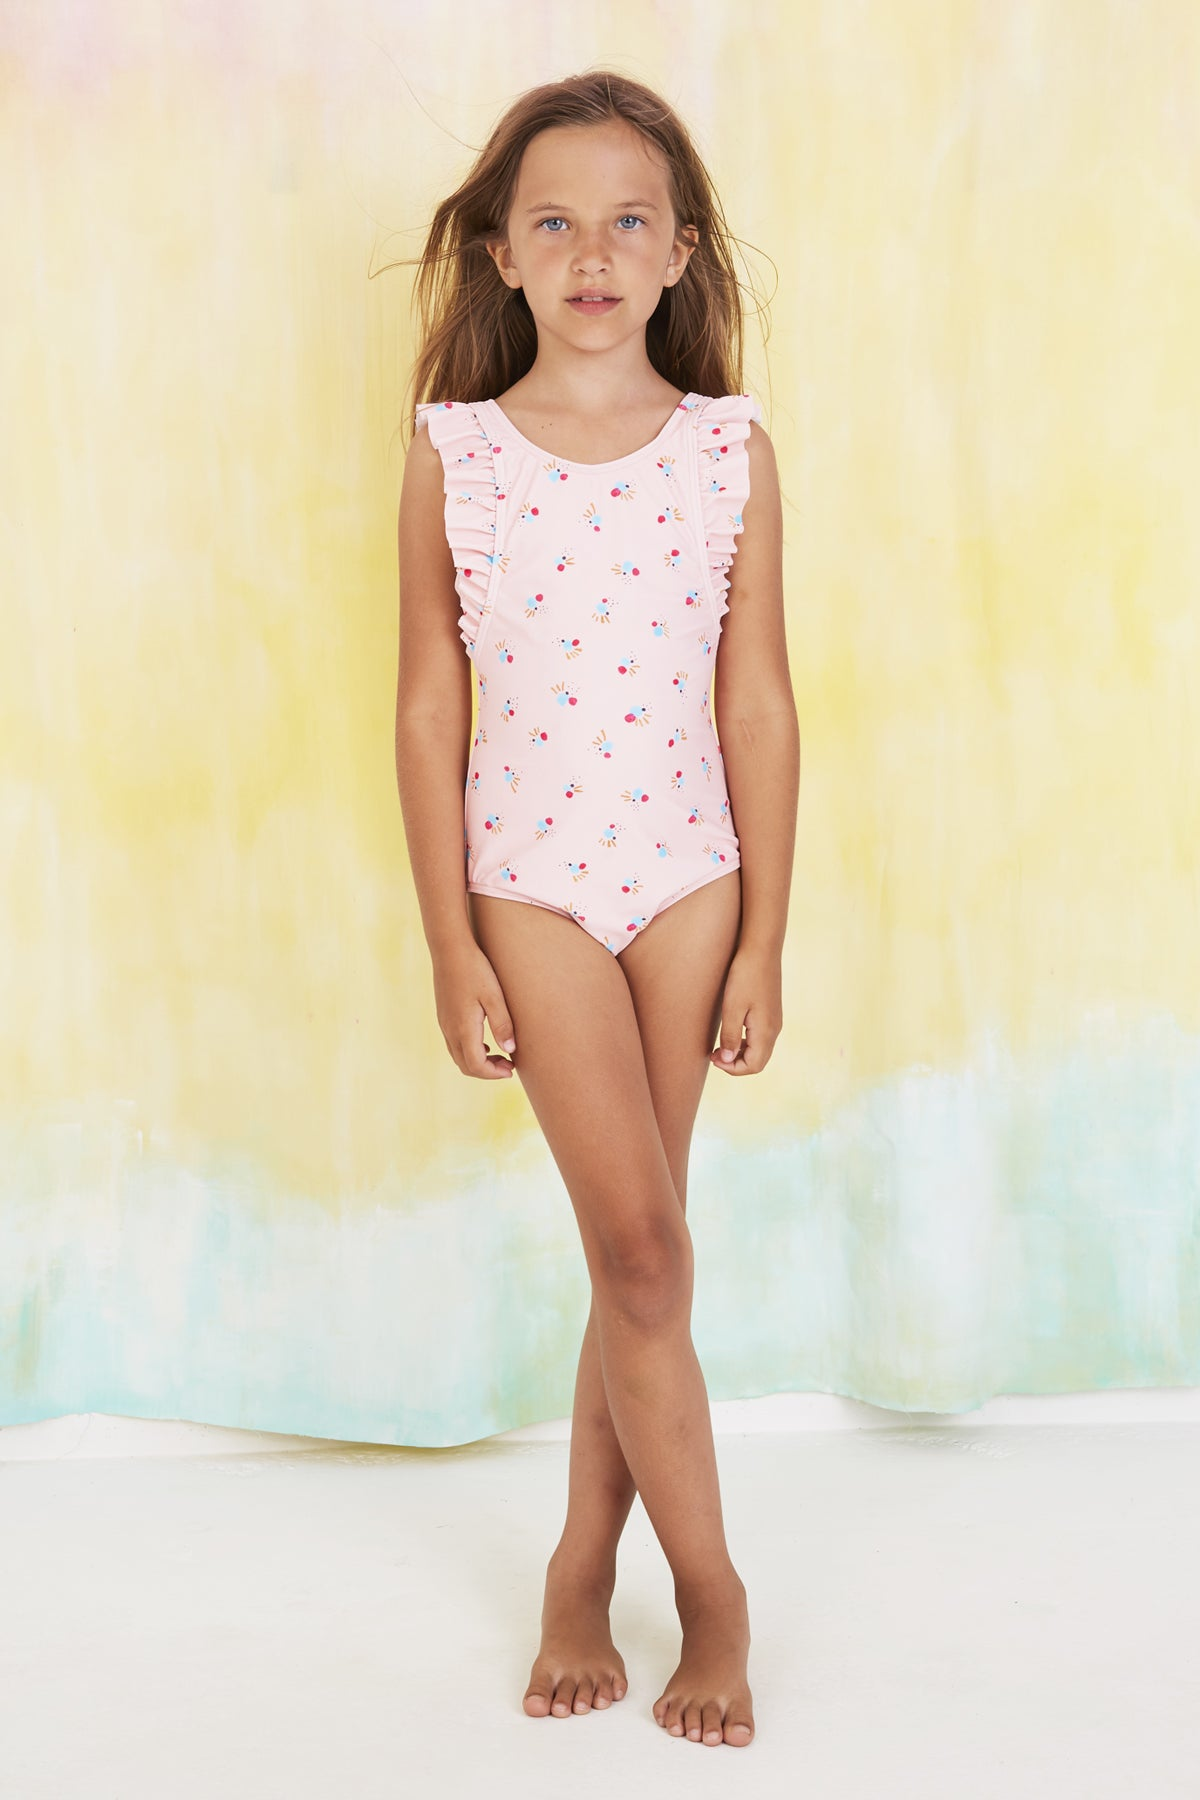 Soft Gallery Ana Rose Swimsuit